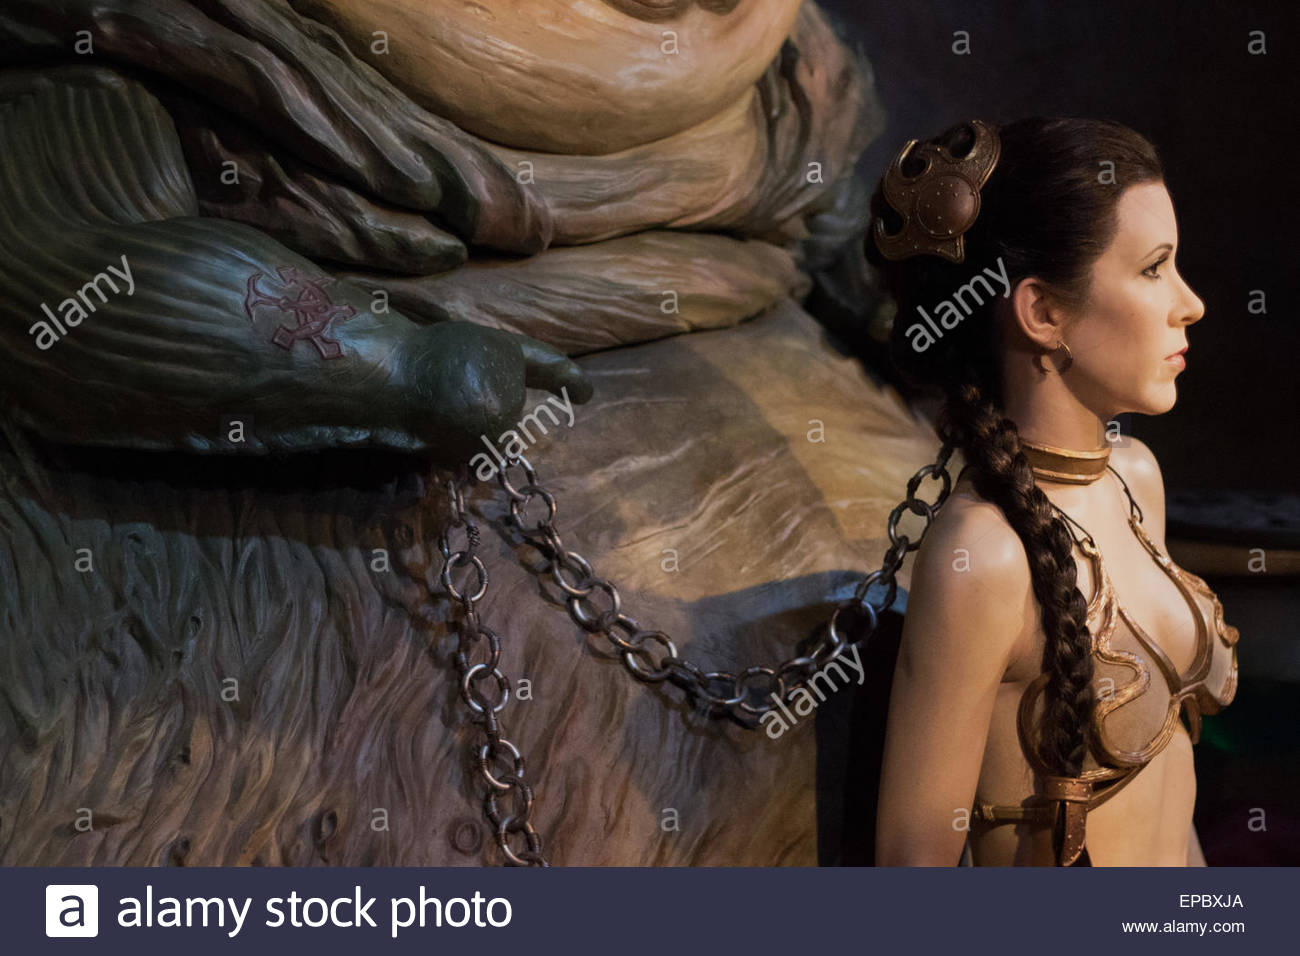 Princess leia chained up in her Golden bikini by Jabba the Hutt - Stock Image